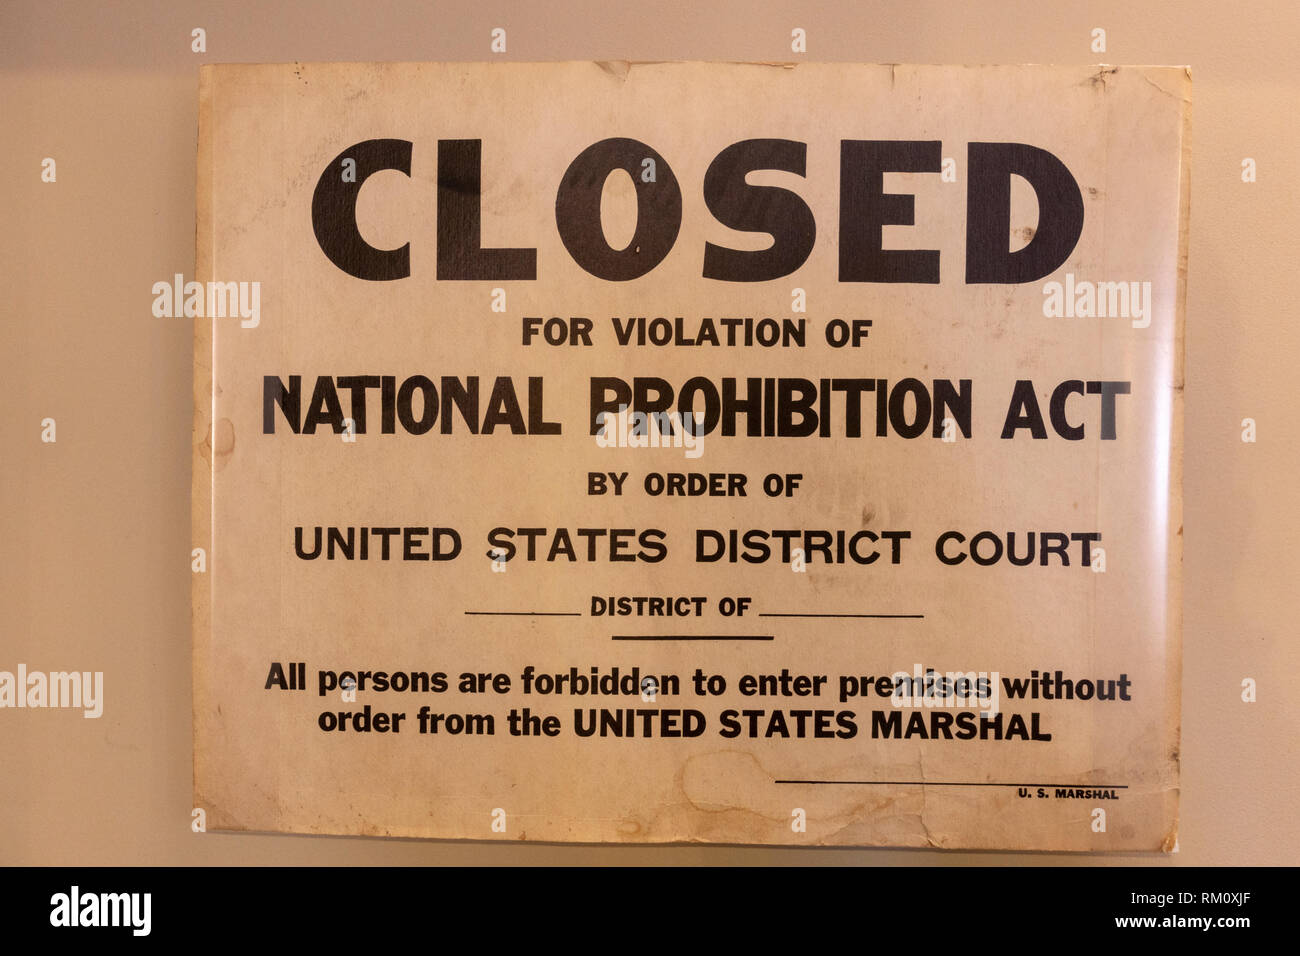 Volstead violation sign, used by Prohibition agents after they raided a speakeasy, The Mob Museum, Las Vegas, Nevada, United States. - Stock Image